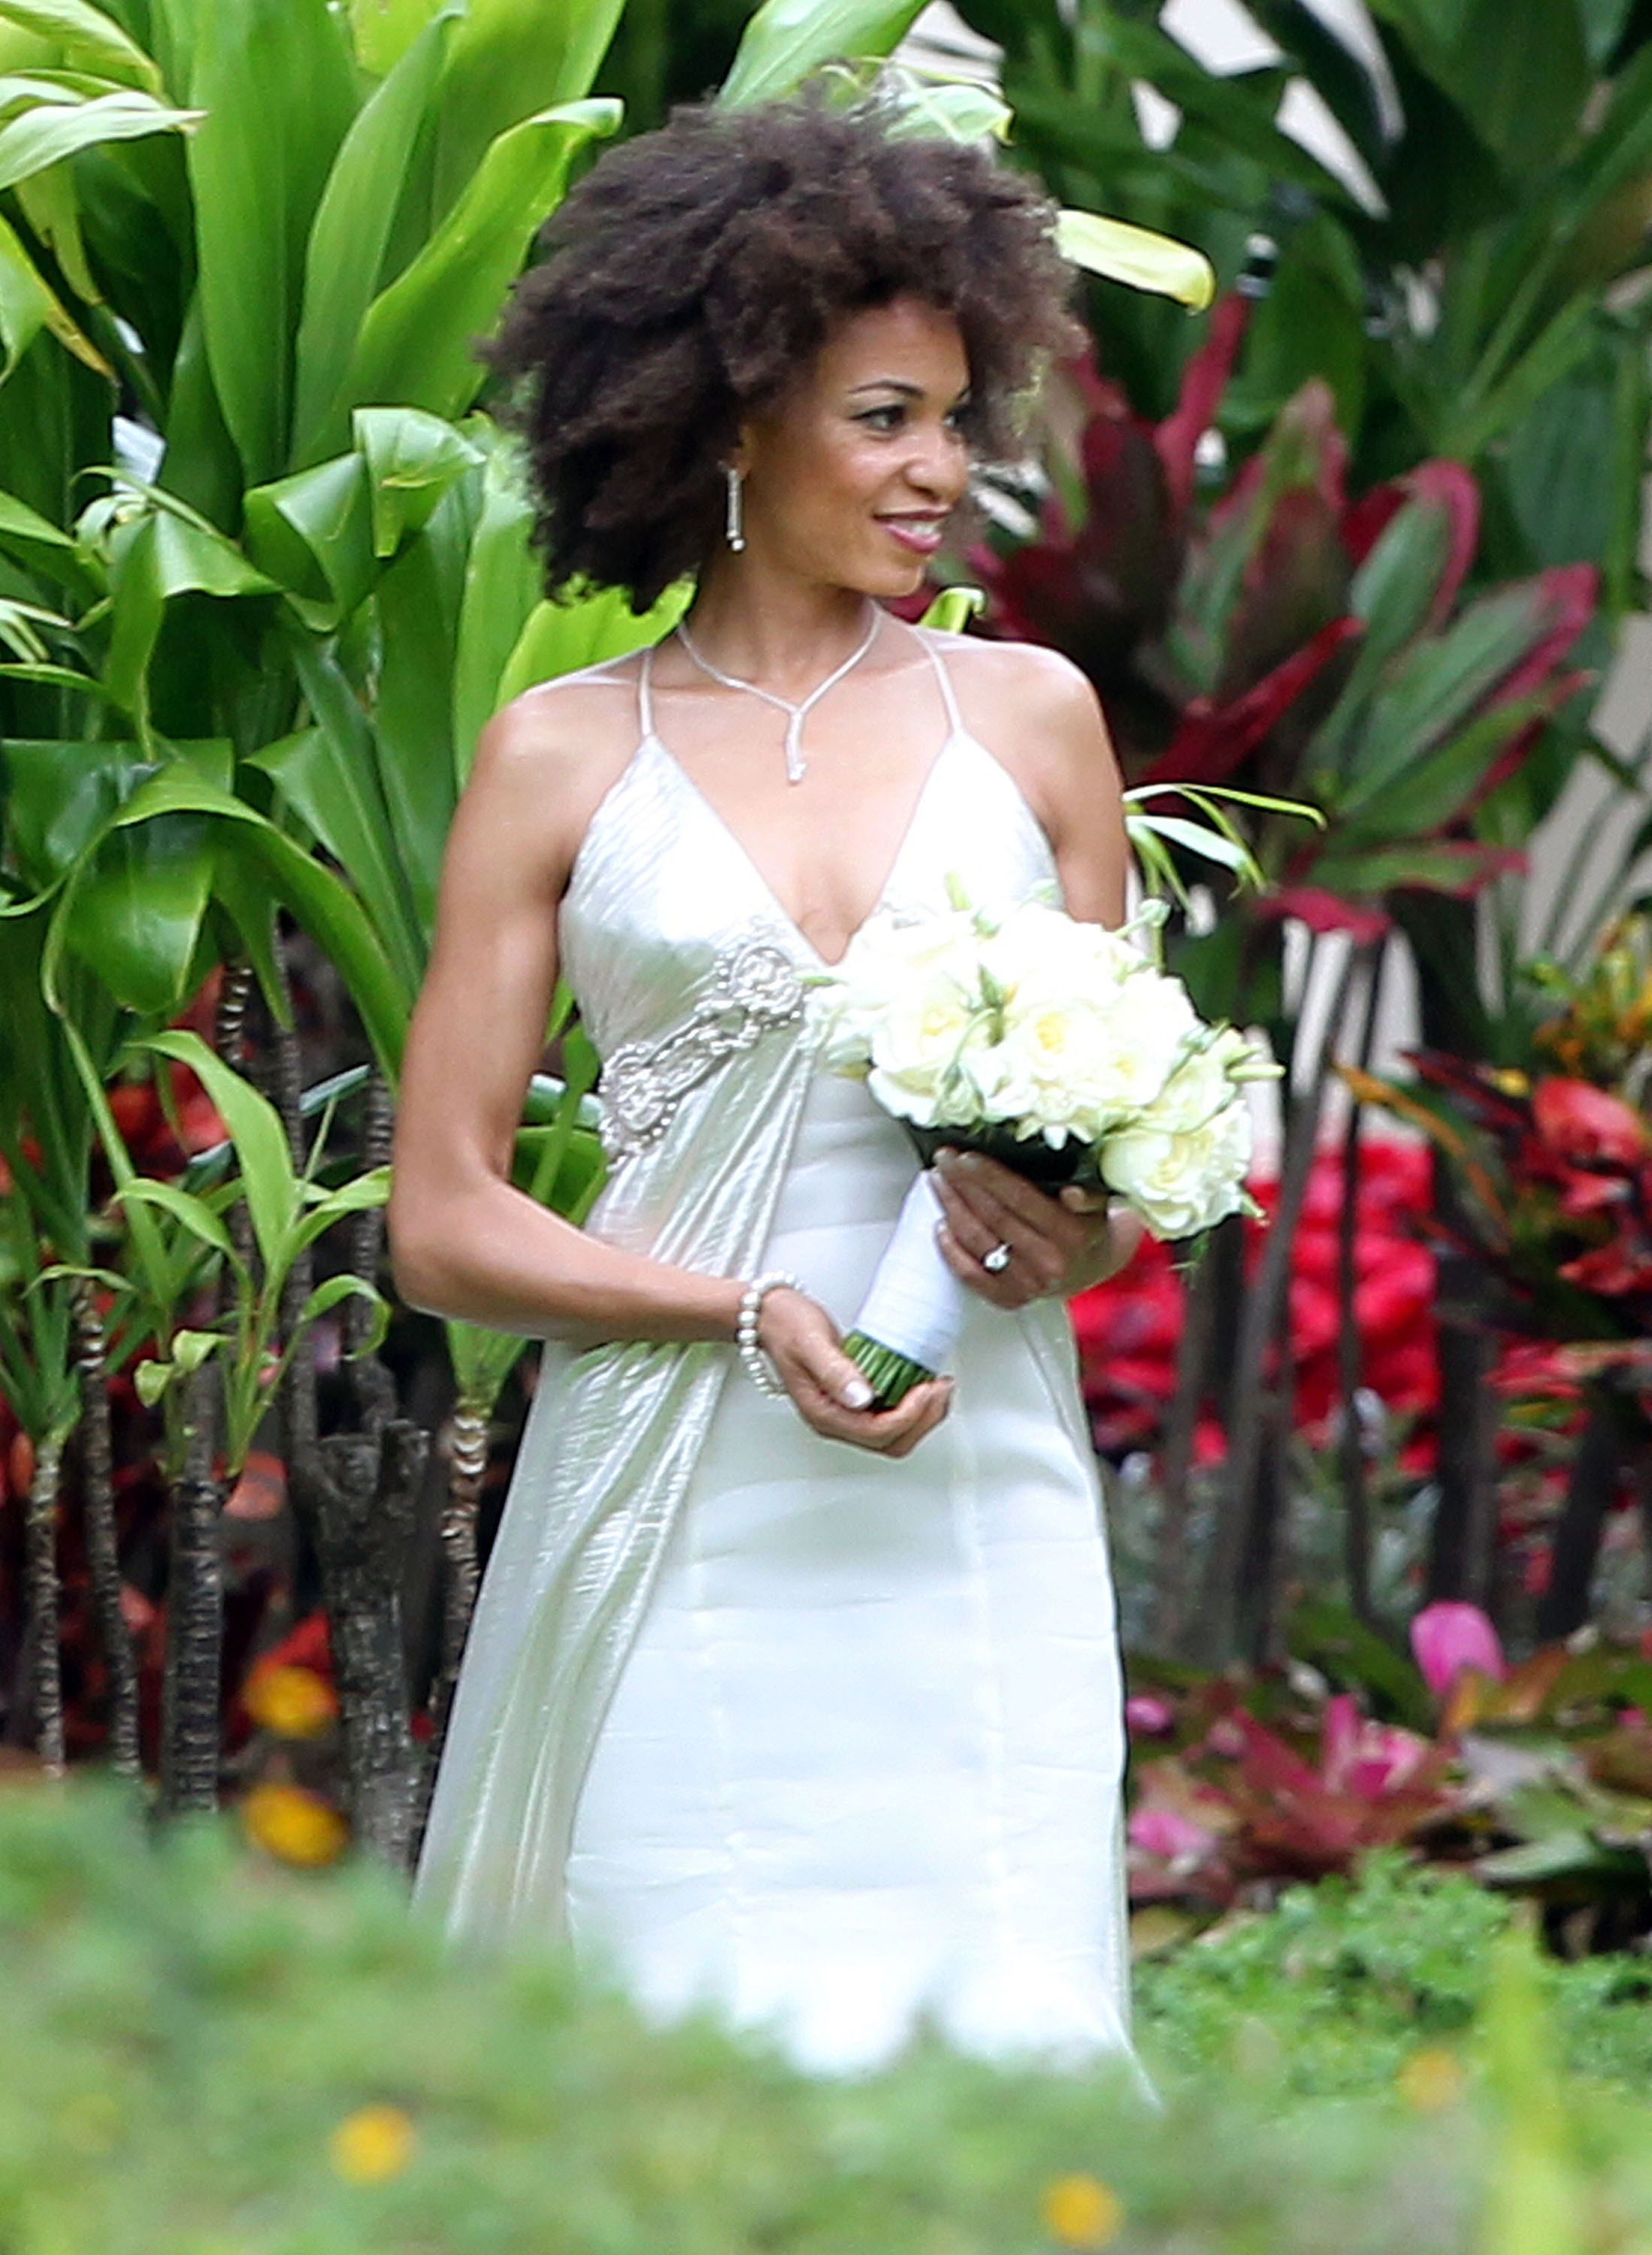 Pics carlos santanaus new wife in her gown before gorgeous hawaii